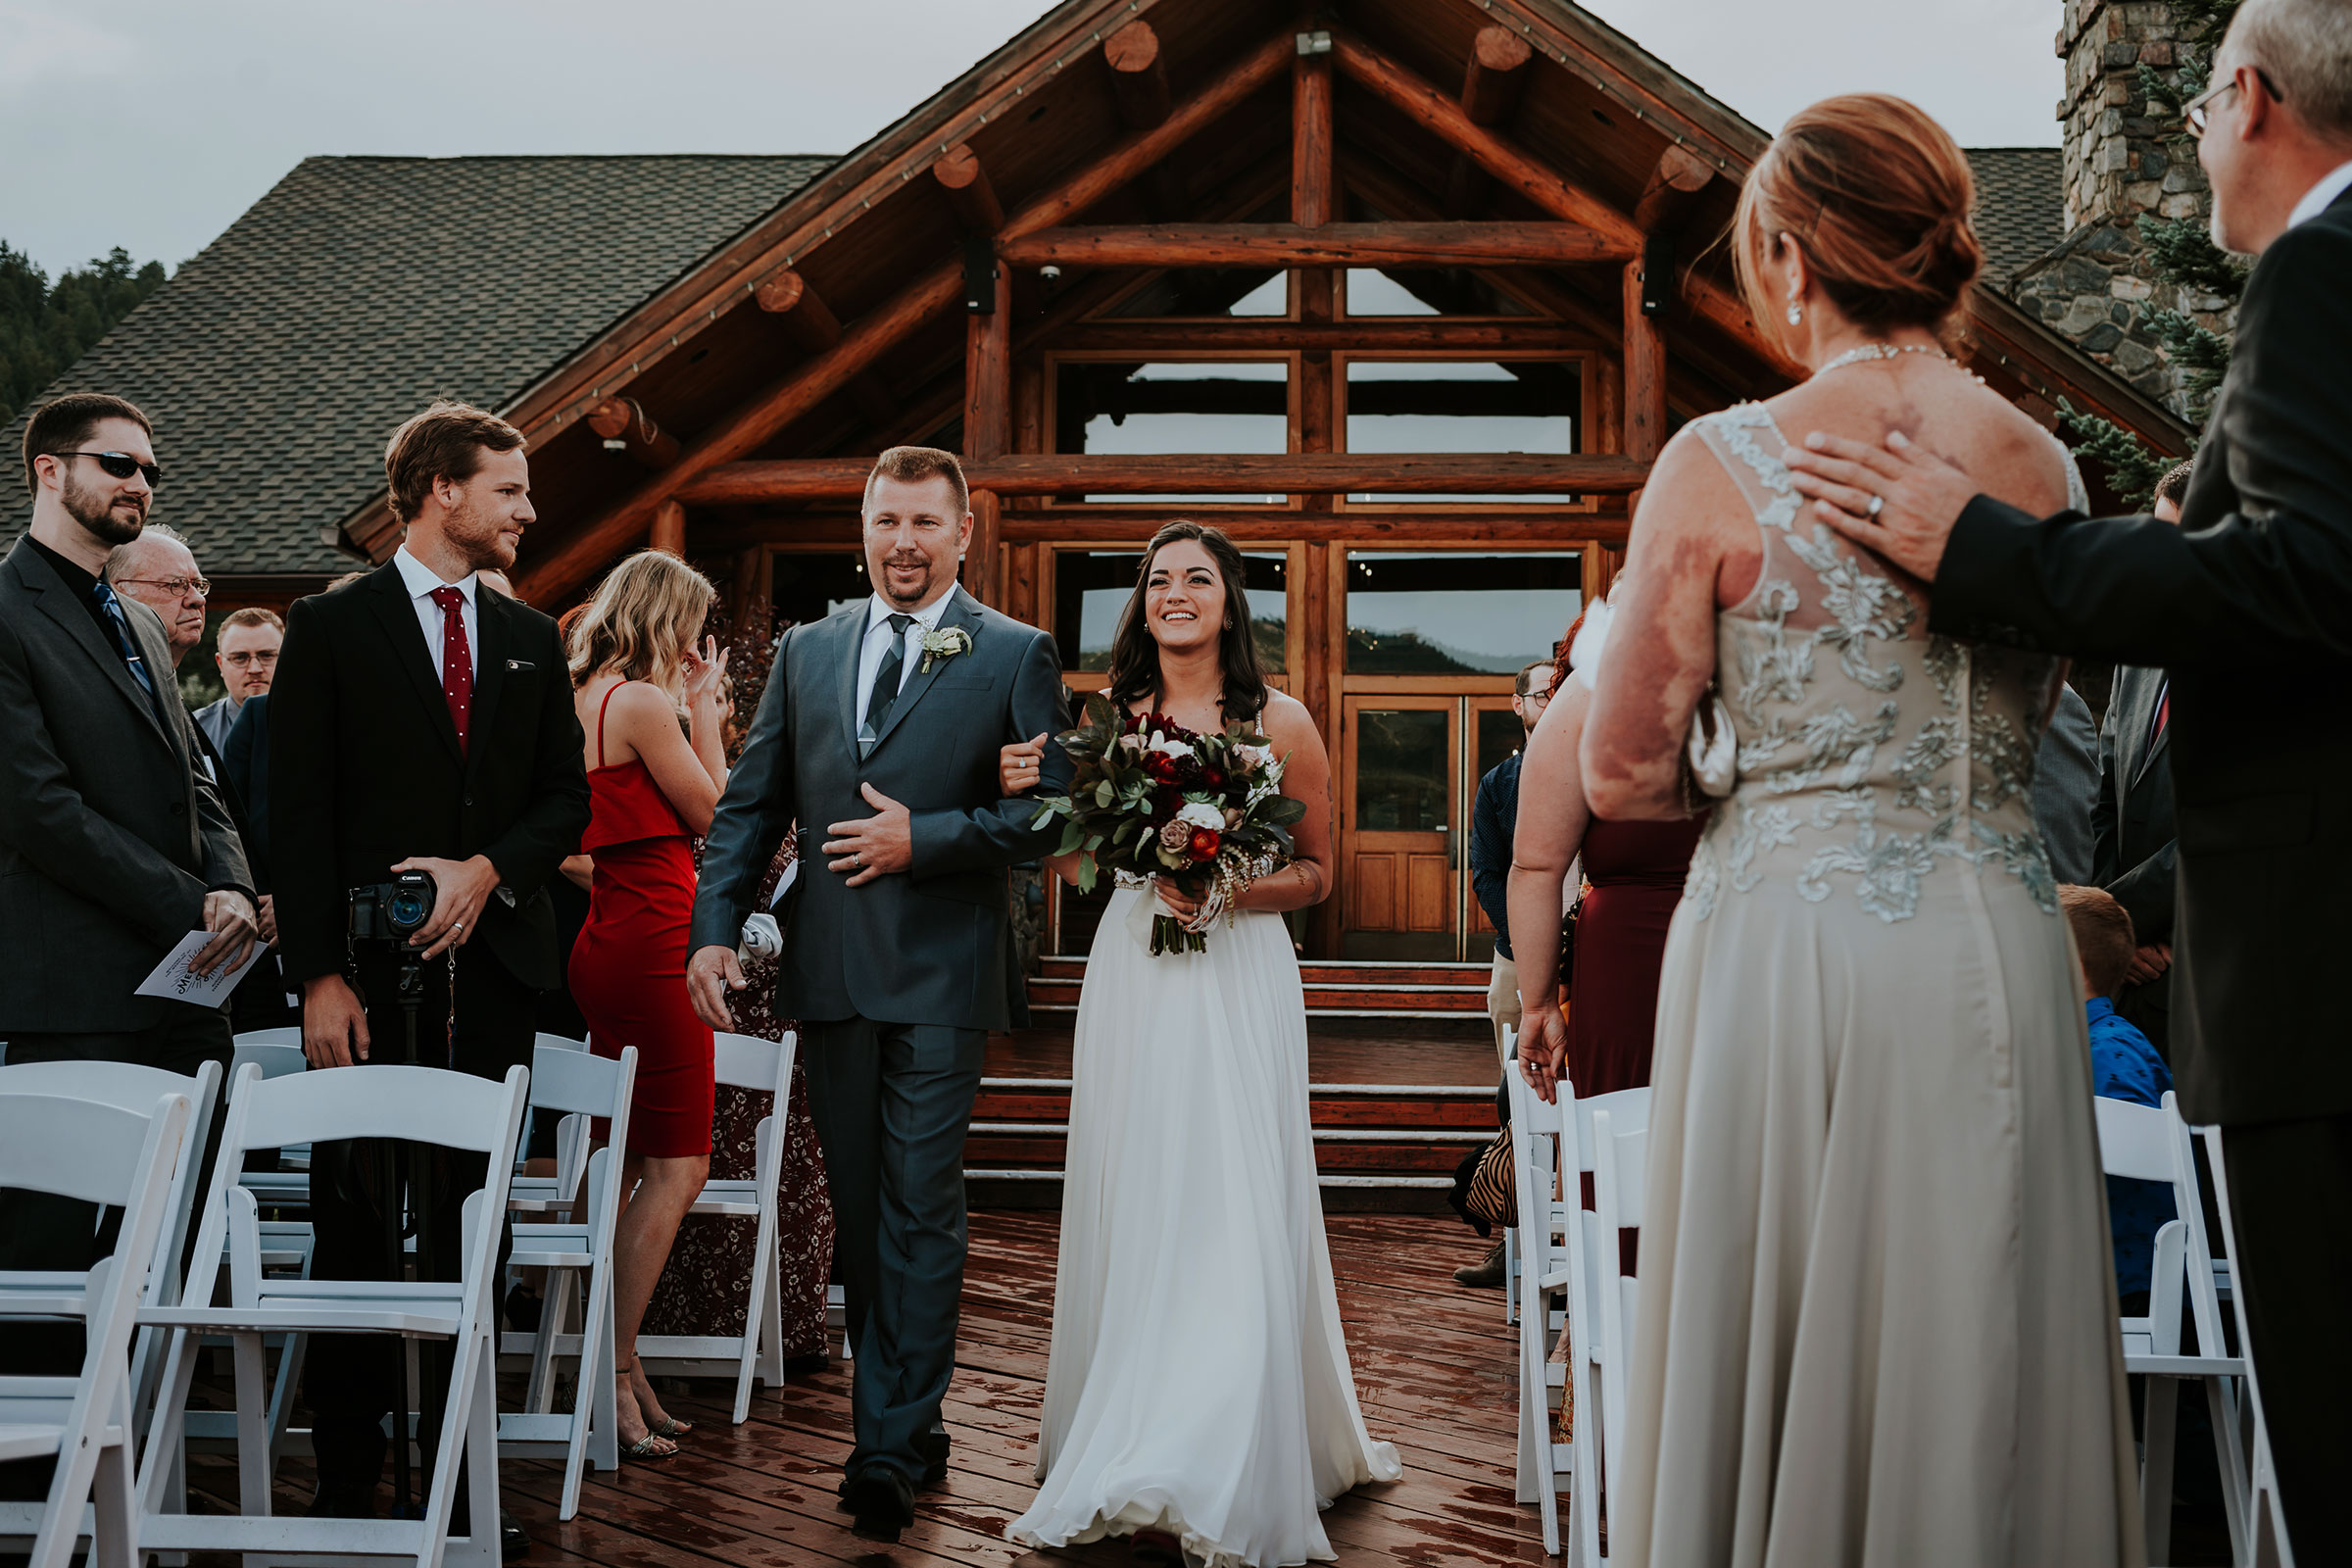 bride-walking-with-dad-down-aisle-in-front-of-lake-house-evergreen-lake-colorado.jpg